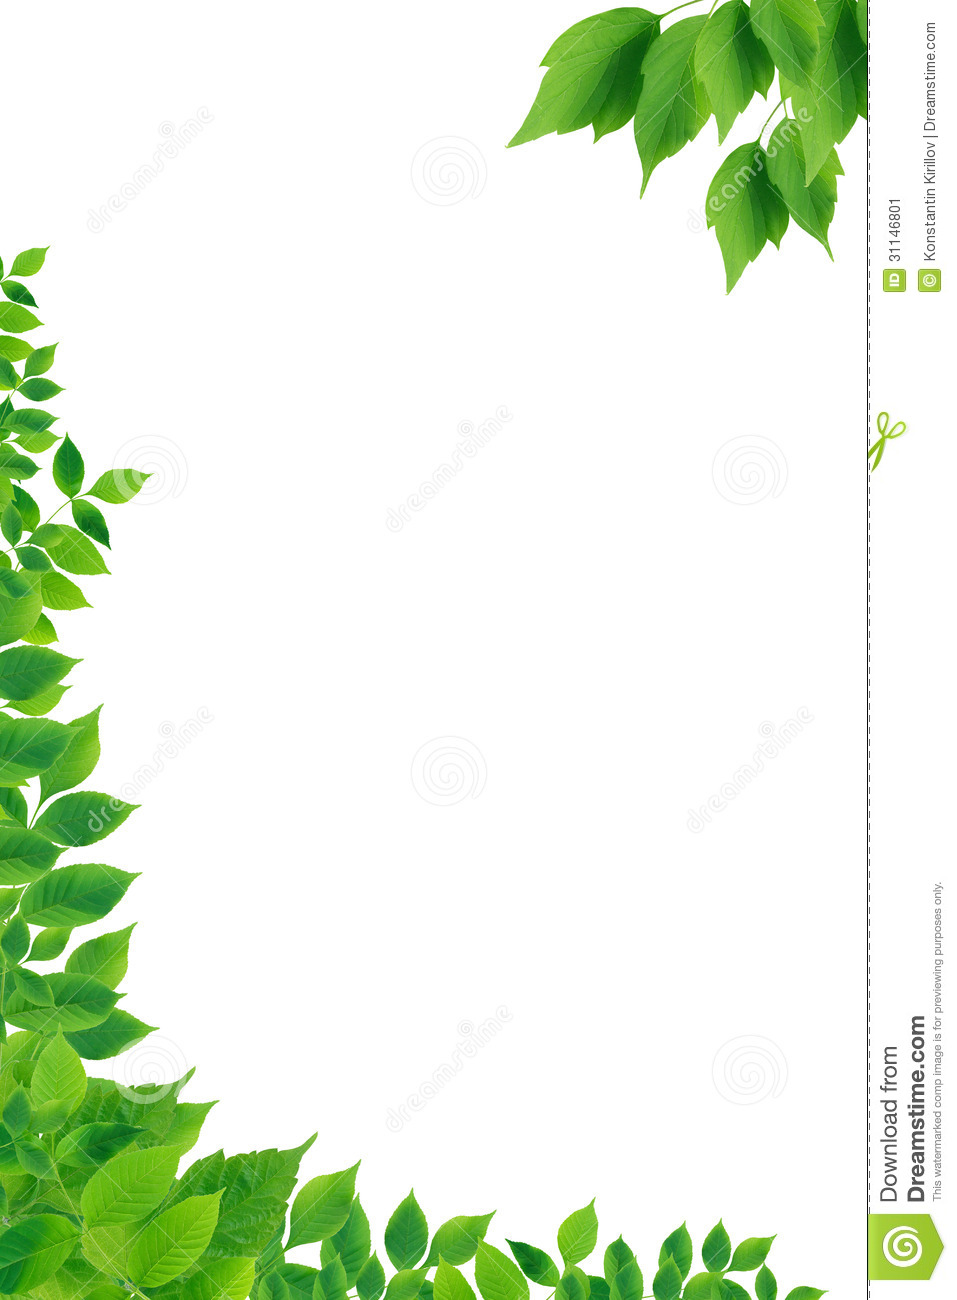 Fall Wallpaper Border Green Leaves Border Stock Image Image Of Background